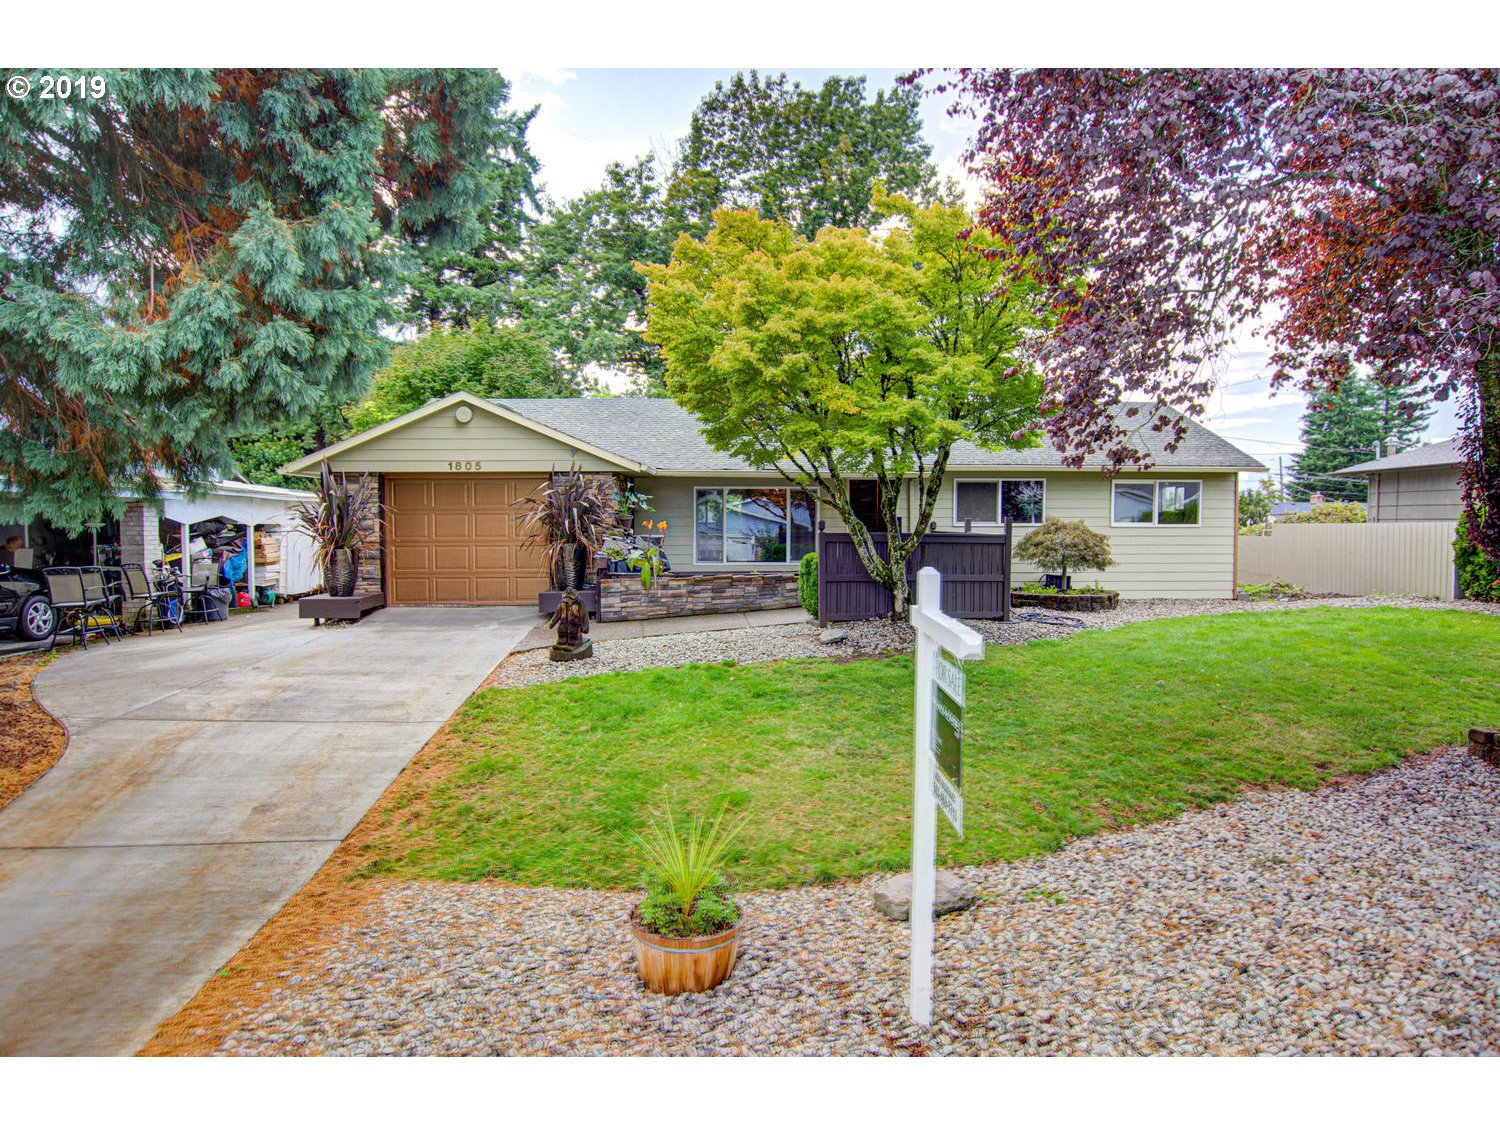 Incredible opportunity in SE Portland. Spacious Mill Park home with finished basement on a 0.22 Acre double lot. Thoroughly remodeled with exceptional attention to detail. Updated kitchen and bathroom as well as artistic stonework and finish carpentry. 3 bedrooms and full bath on the main floor and master suite in the finished basement. Expansive back deck and large private back yard.  Open Houses Fri 5-7pm, Sat 2-4pm, Sun 12-2pm